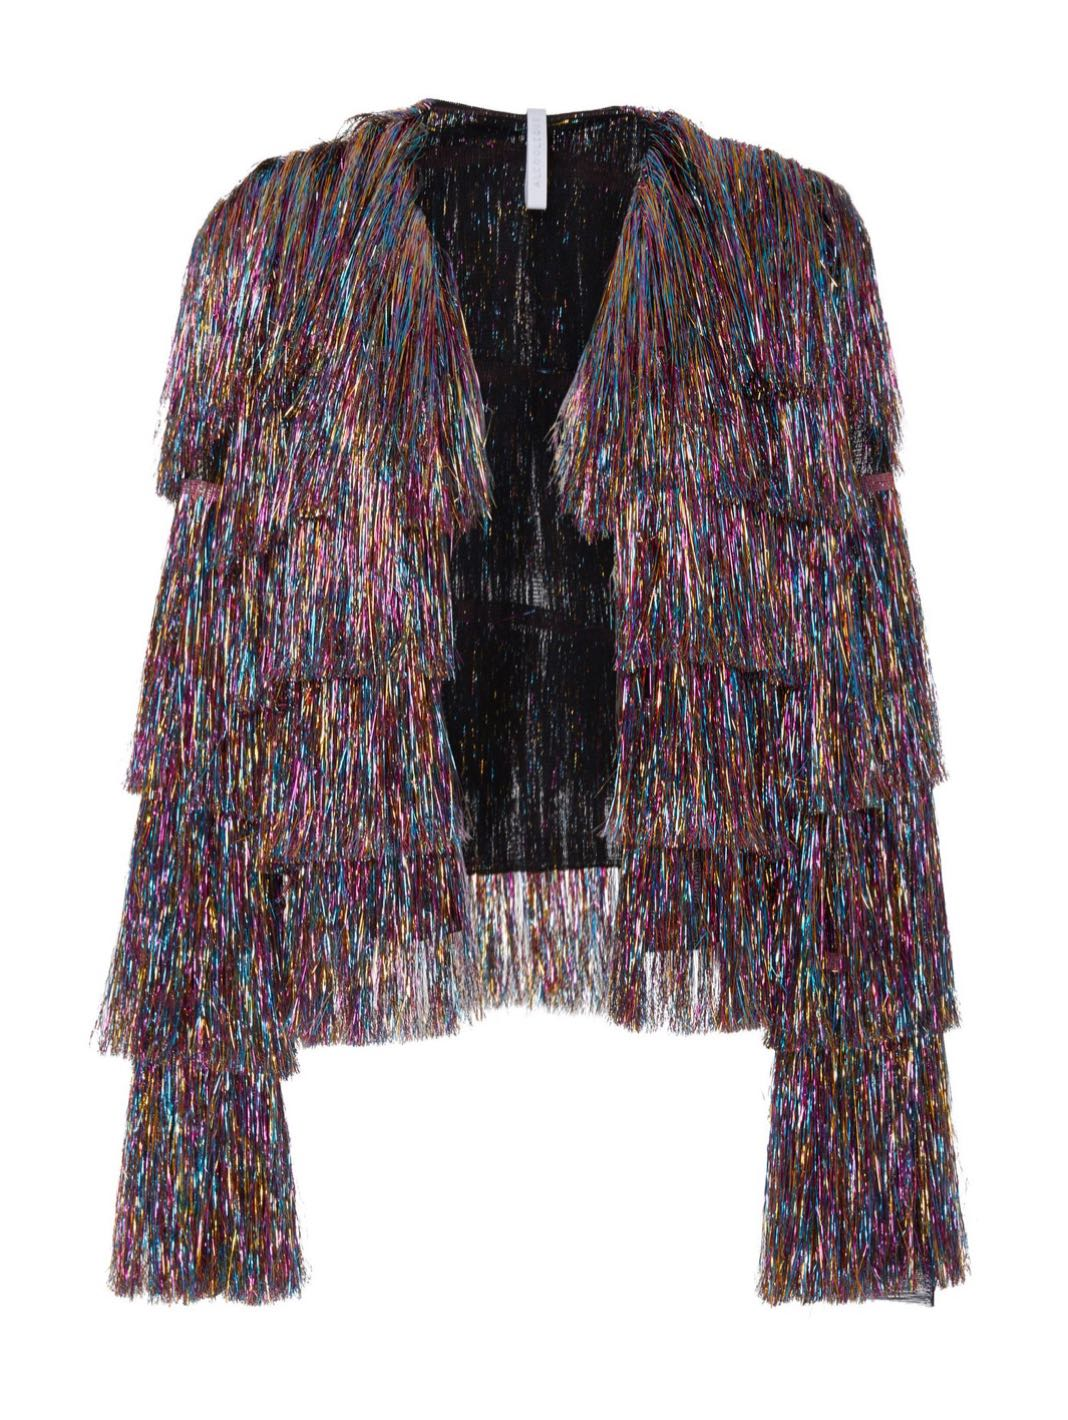 Chantal Rainbow Bolero Jacket - The Bobby Boga